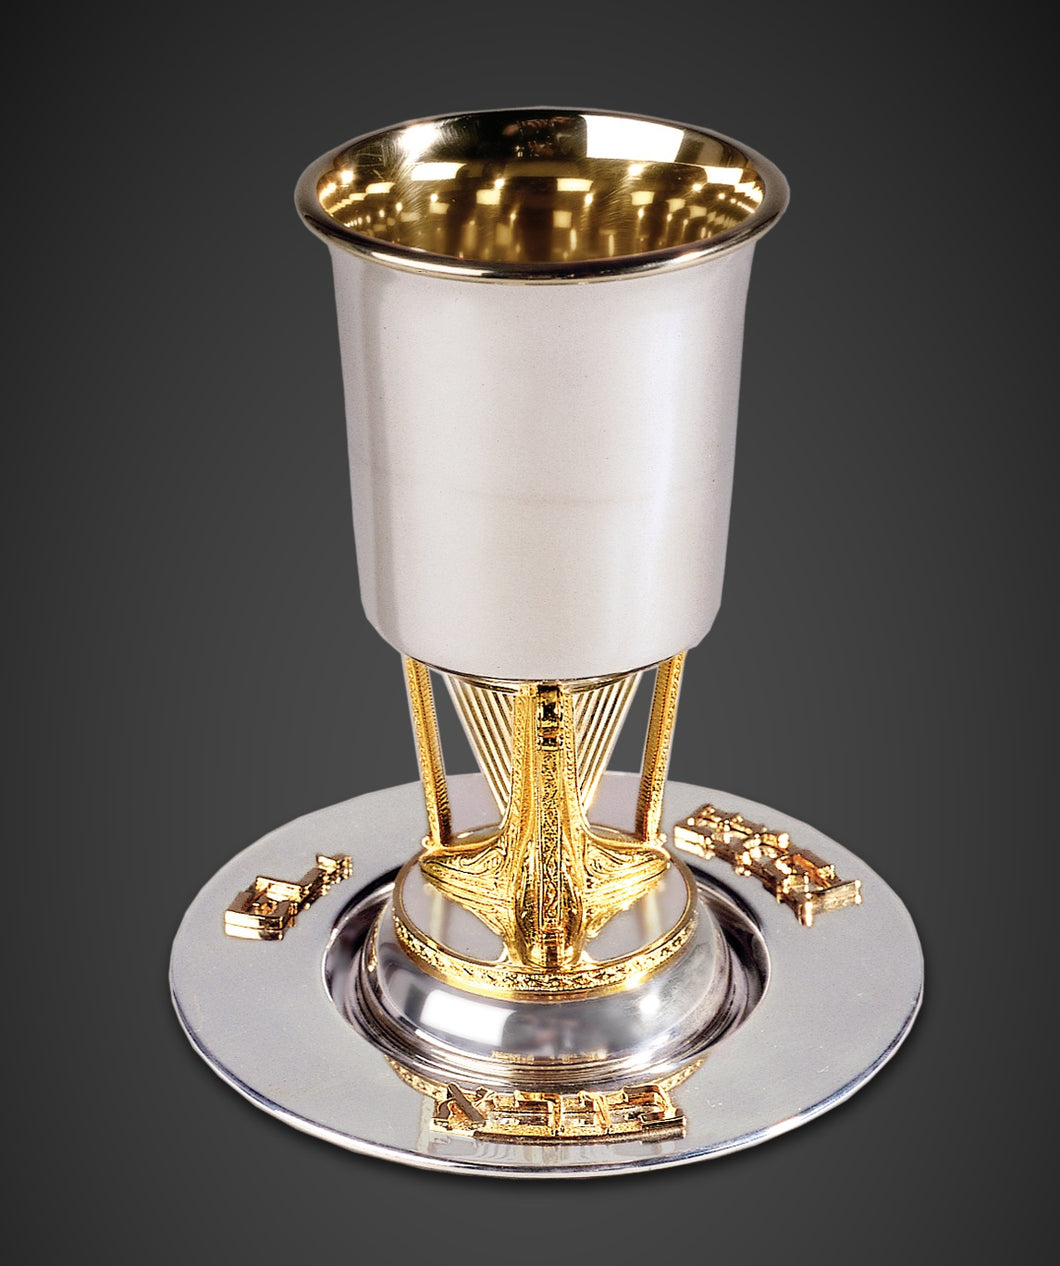 The King David Kiddush Cup